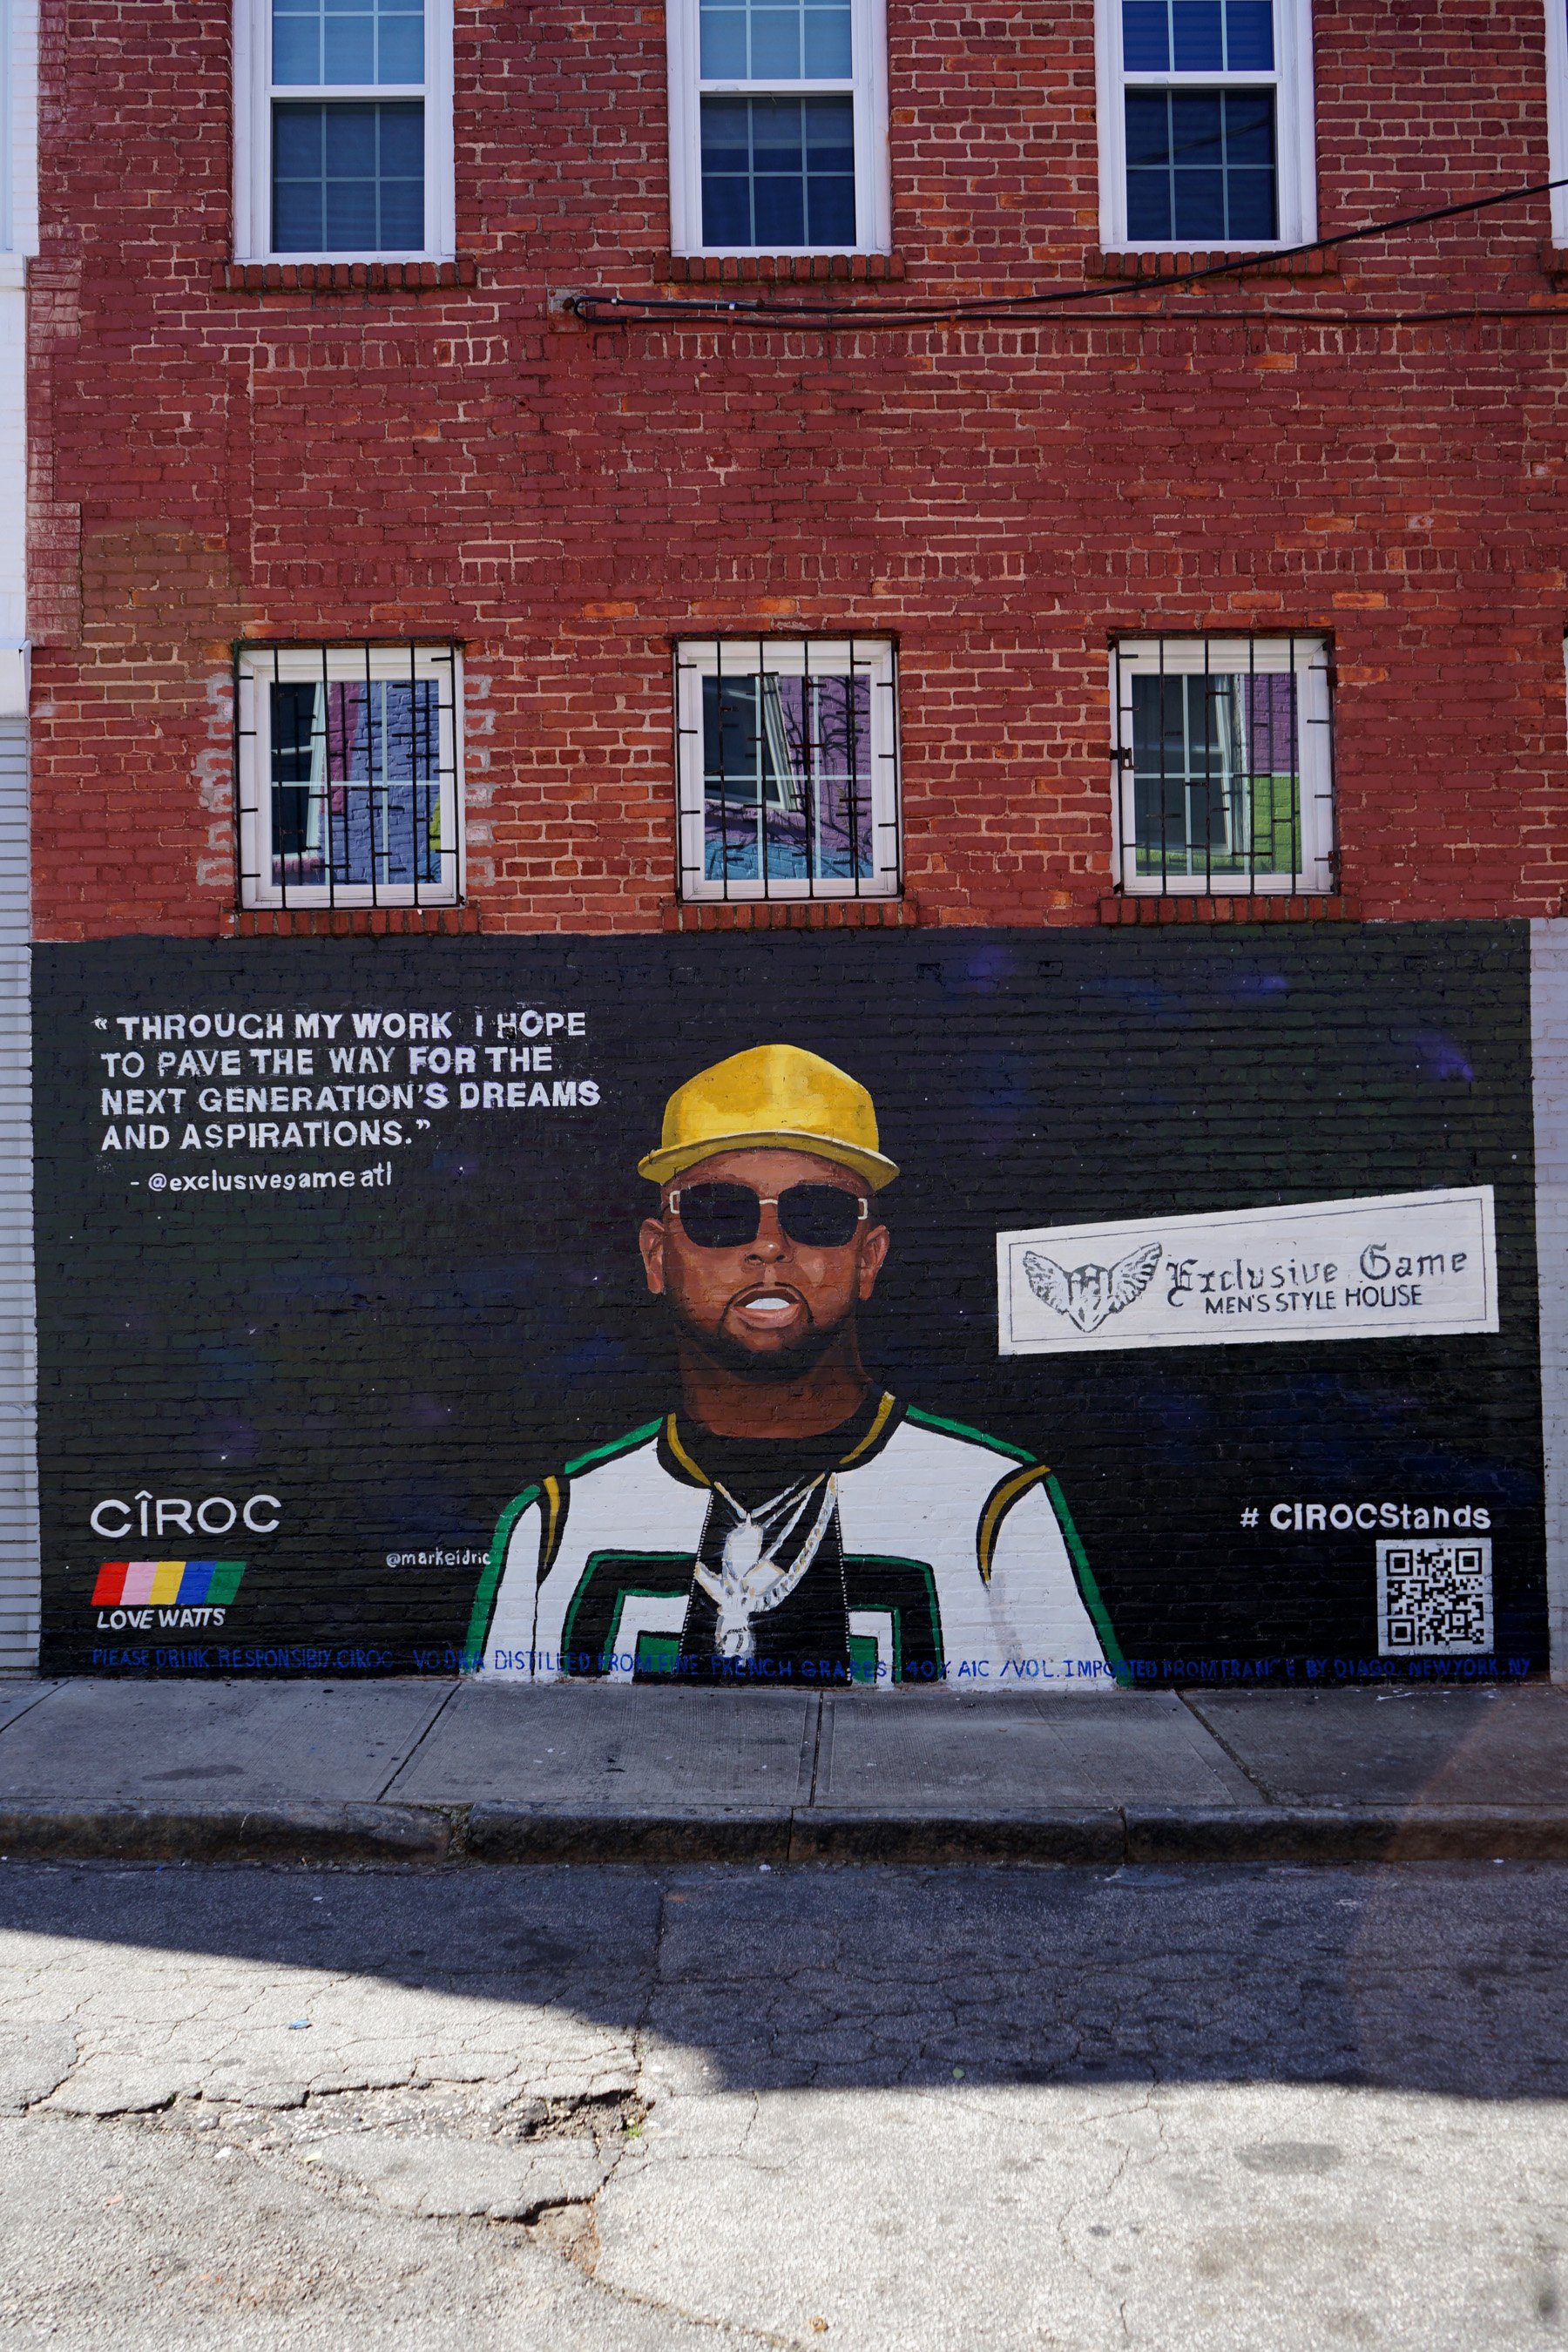 #CIROCStands Mural Of Teheran Jones Painted By Artist Markeidric In Atlanta To Celebrate Black Excellence